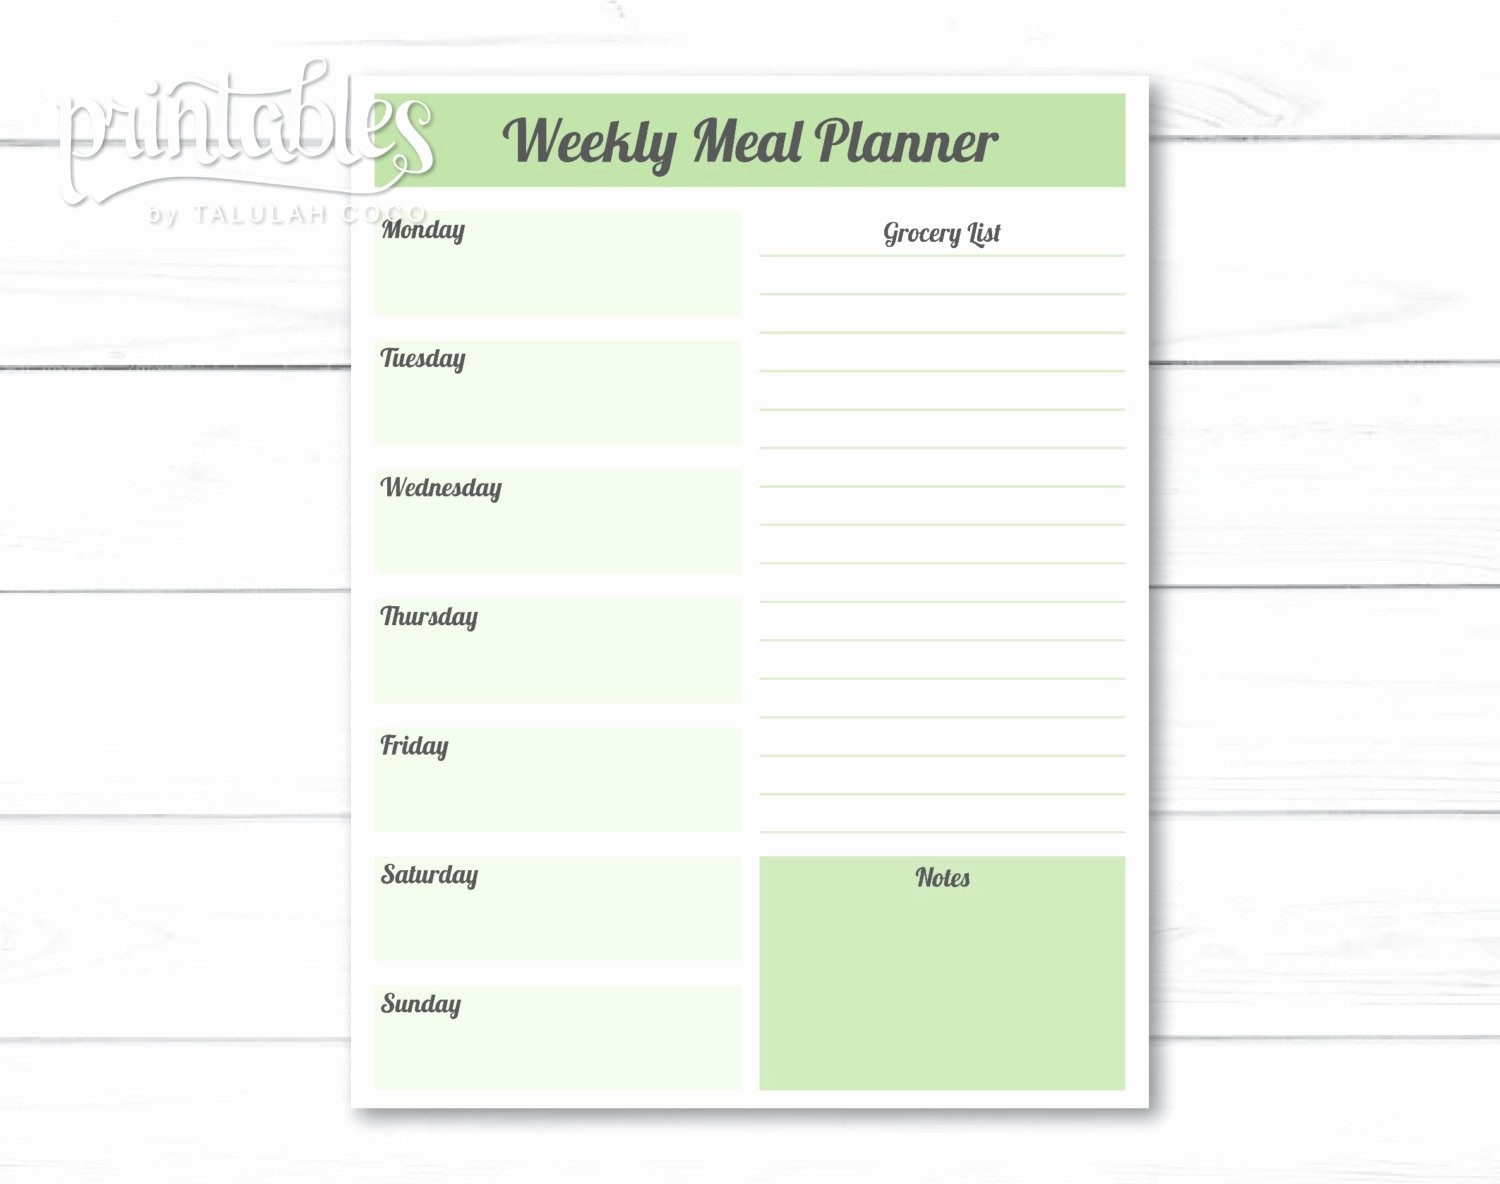 Weekly Meal Planner Templates Free Unique Editable Meal Planner Template Weekly Meal Planner with